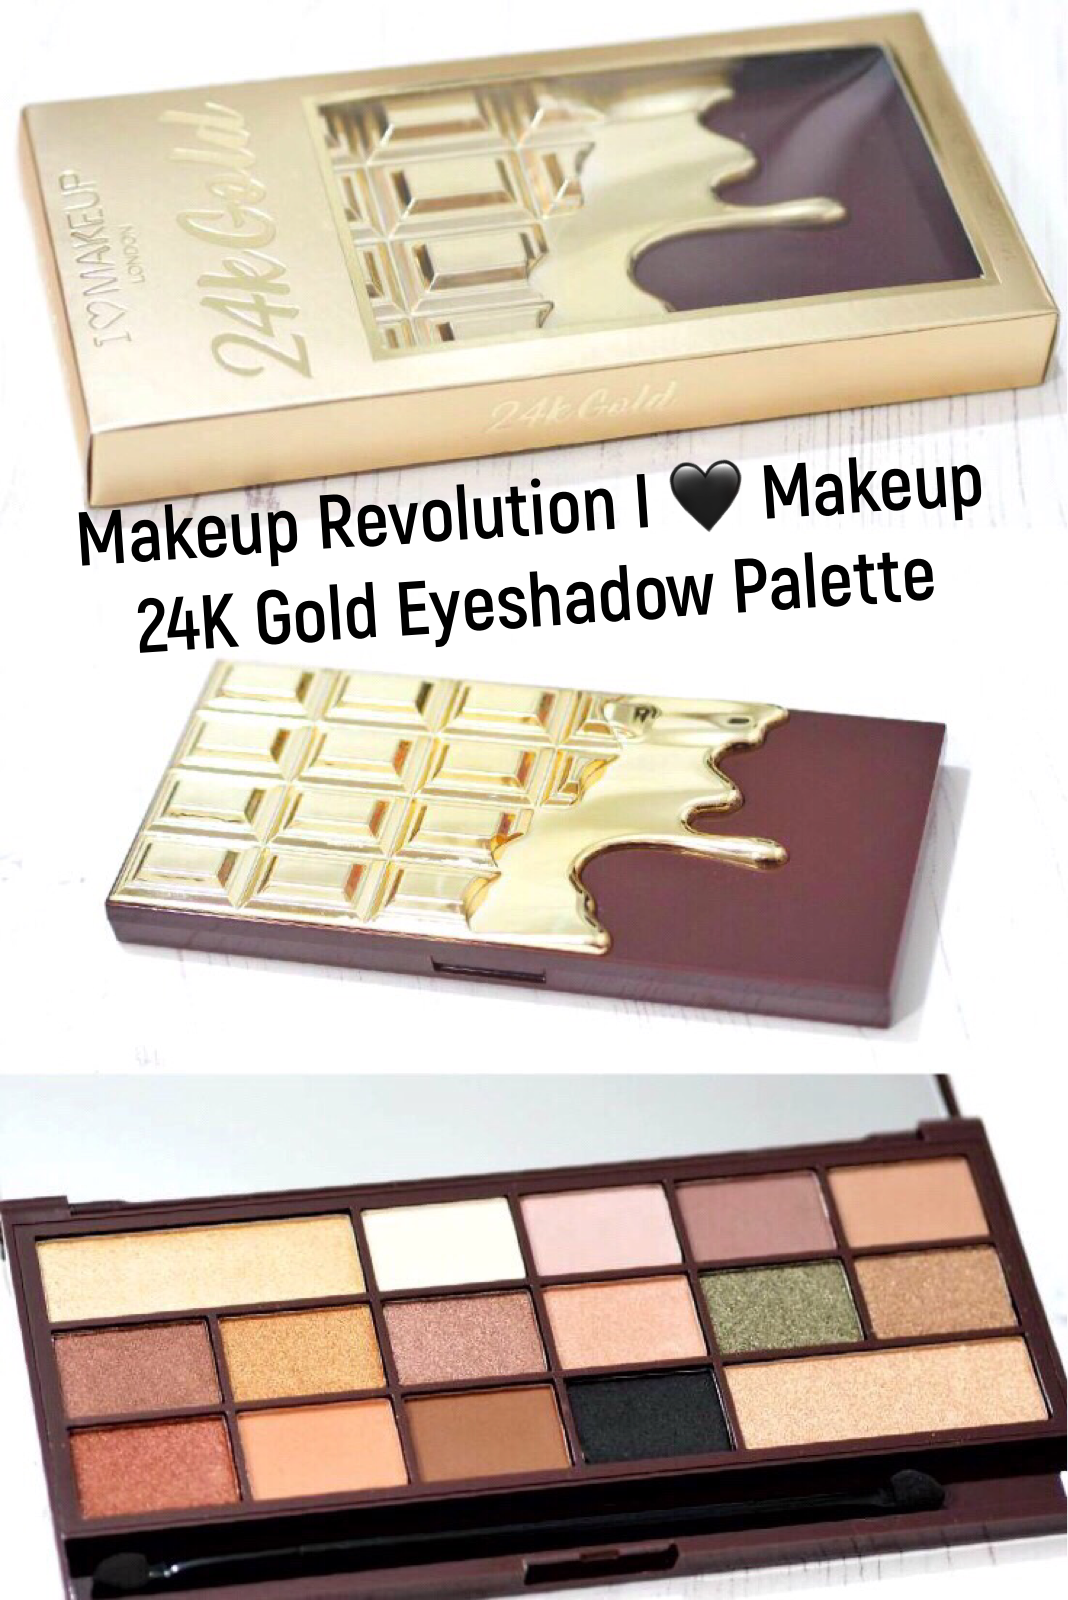 Makeup Revolution 24K Gold Eyeshadow Palette Review